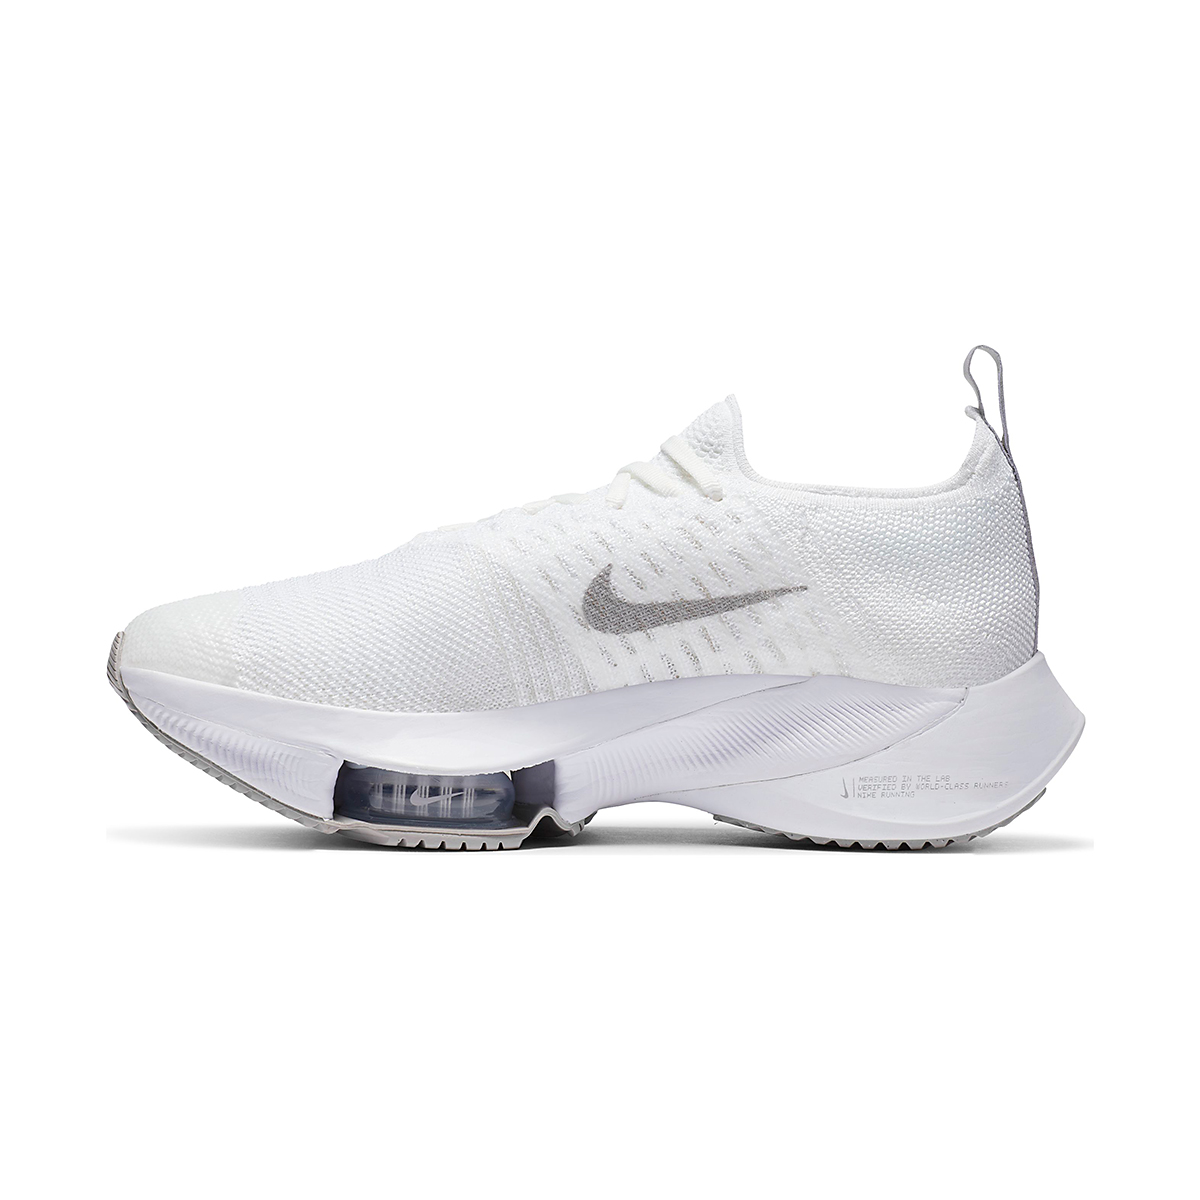 Women's Nike Air Zoom Tempo NEXT% Running Shoe - Color: White/Atmosphere Grey-Pure Platinum - Size: 5 - Width: Regular, White/Atmosphere Grey-Pure Platinum, large, image 2